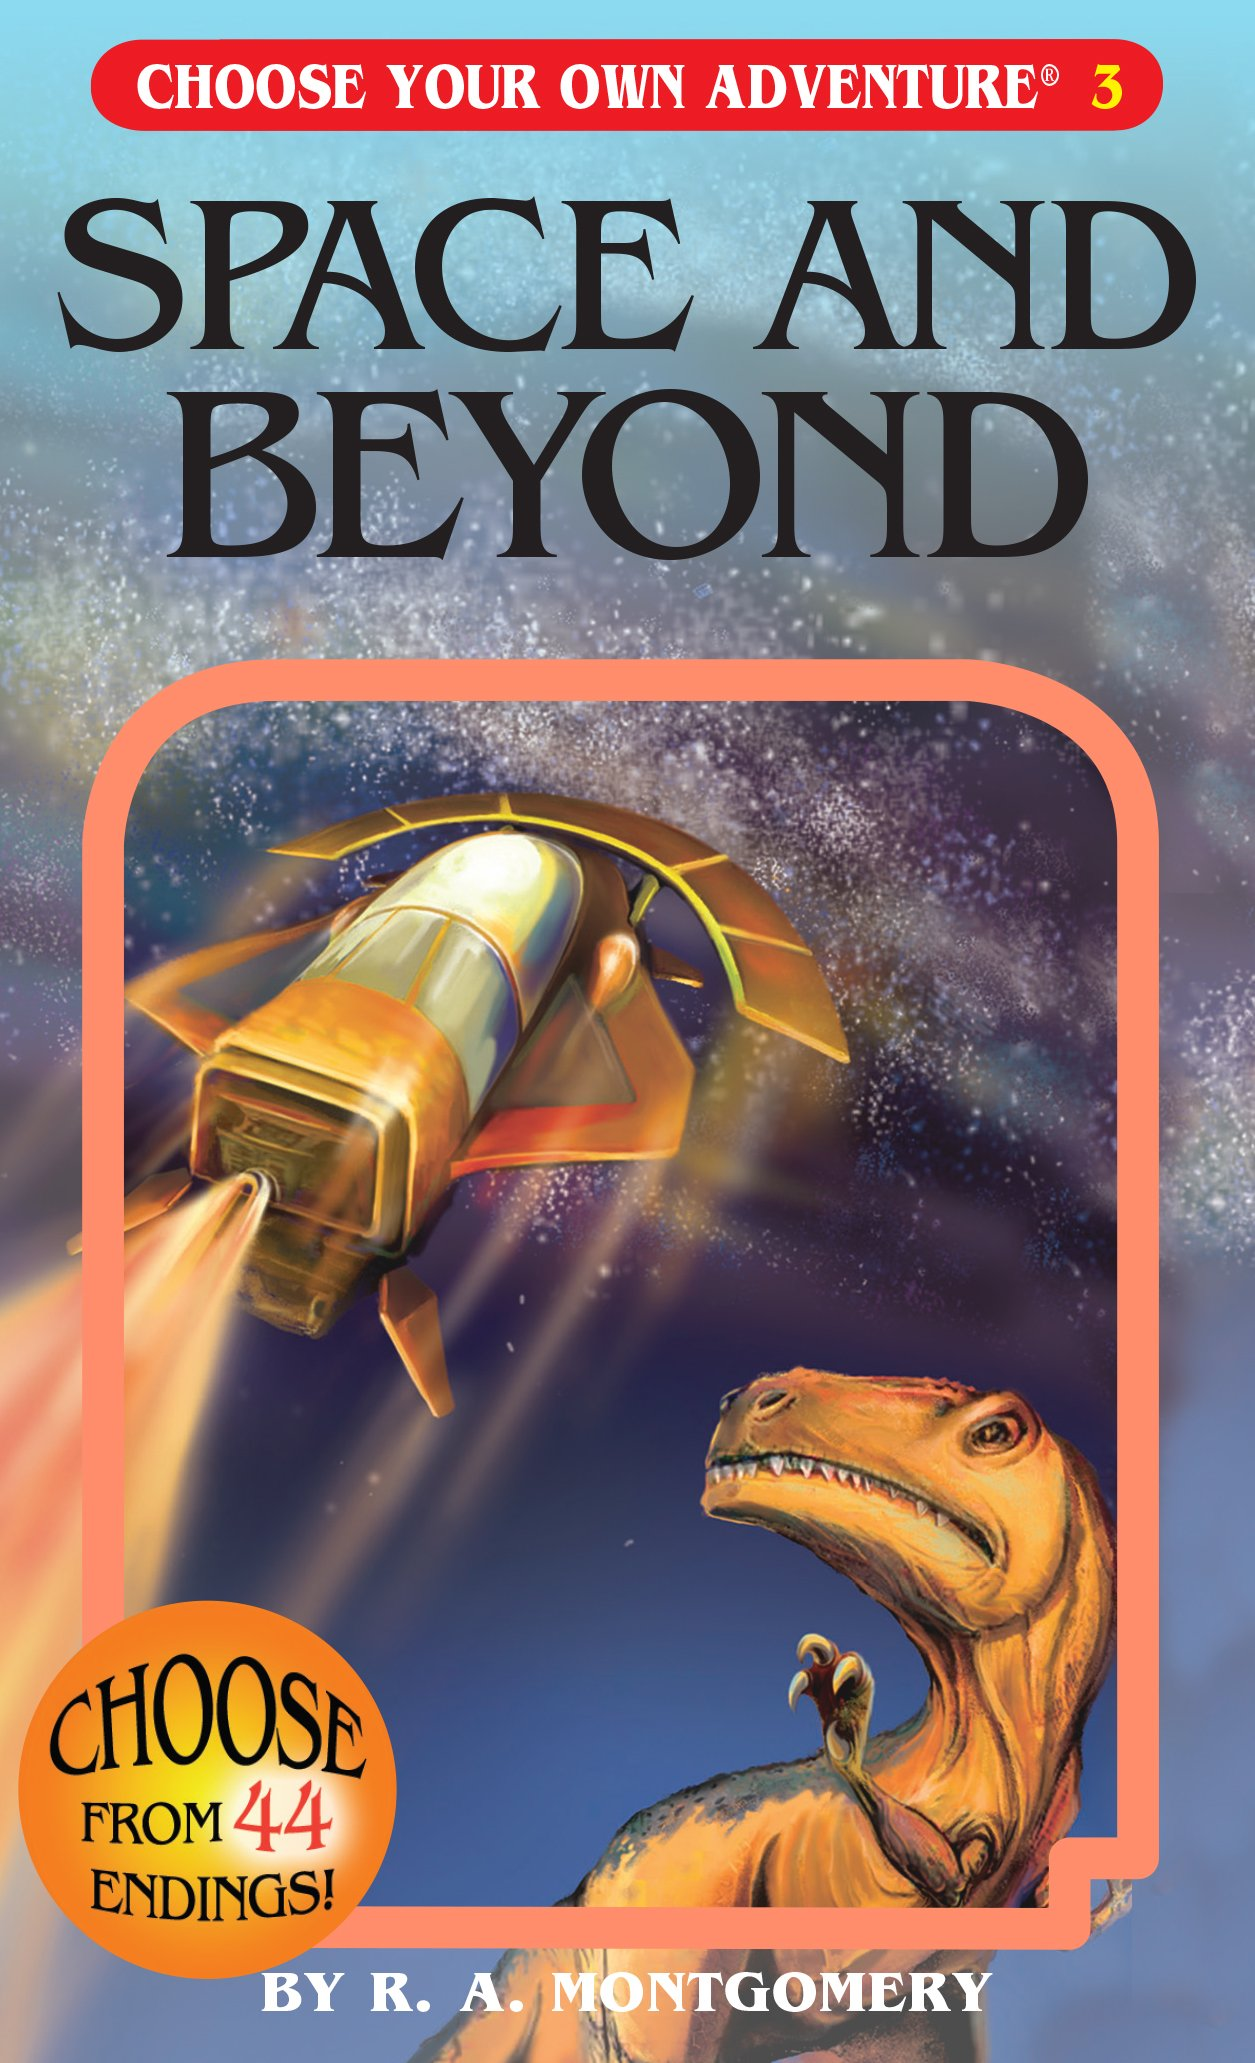 space-and-beyond-choose-your-own-adventure-3